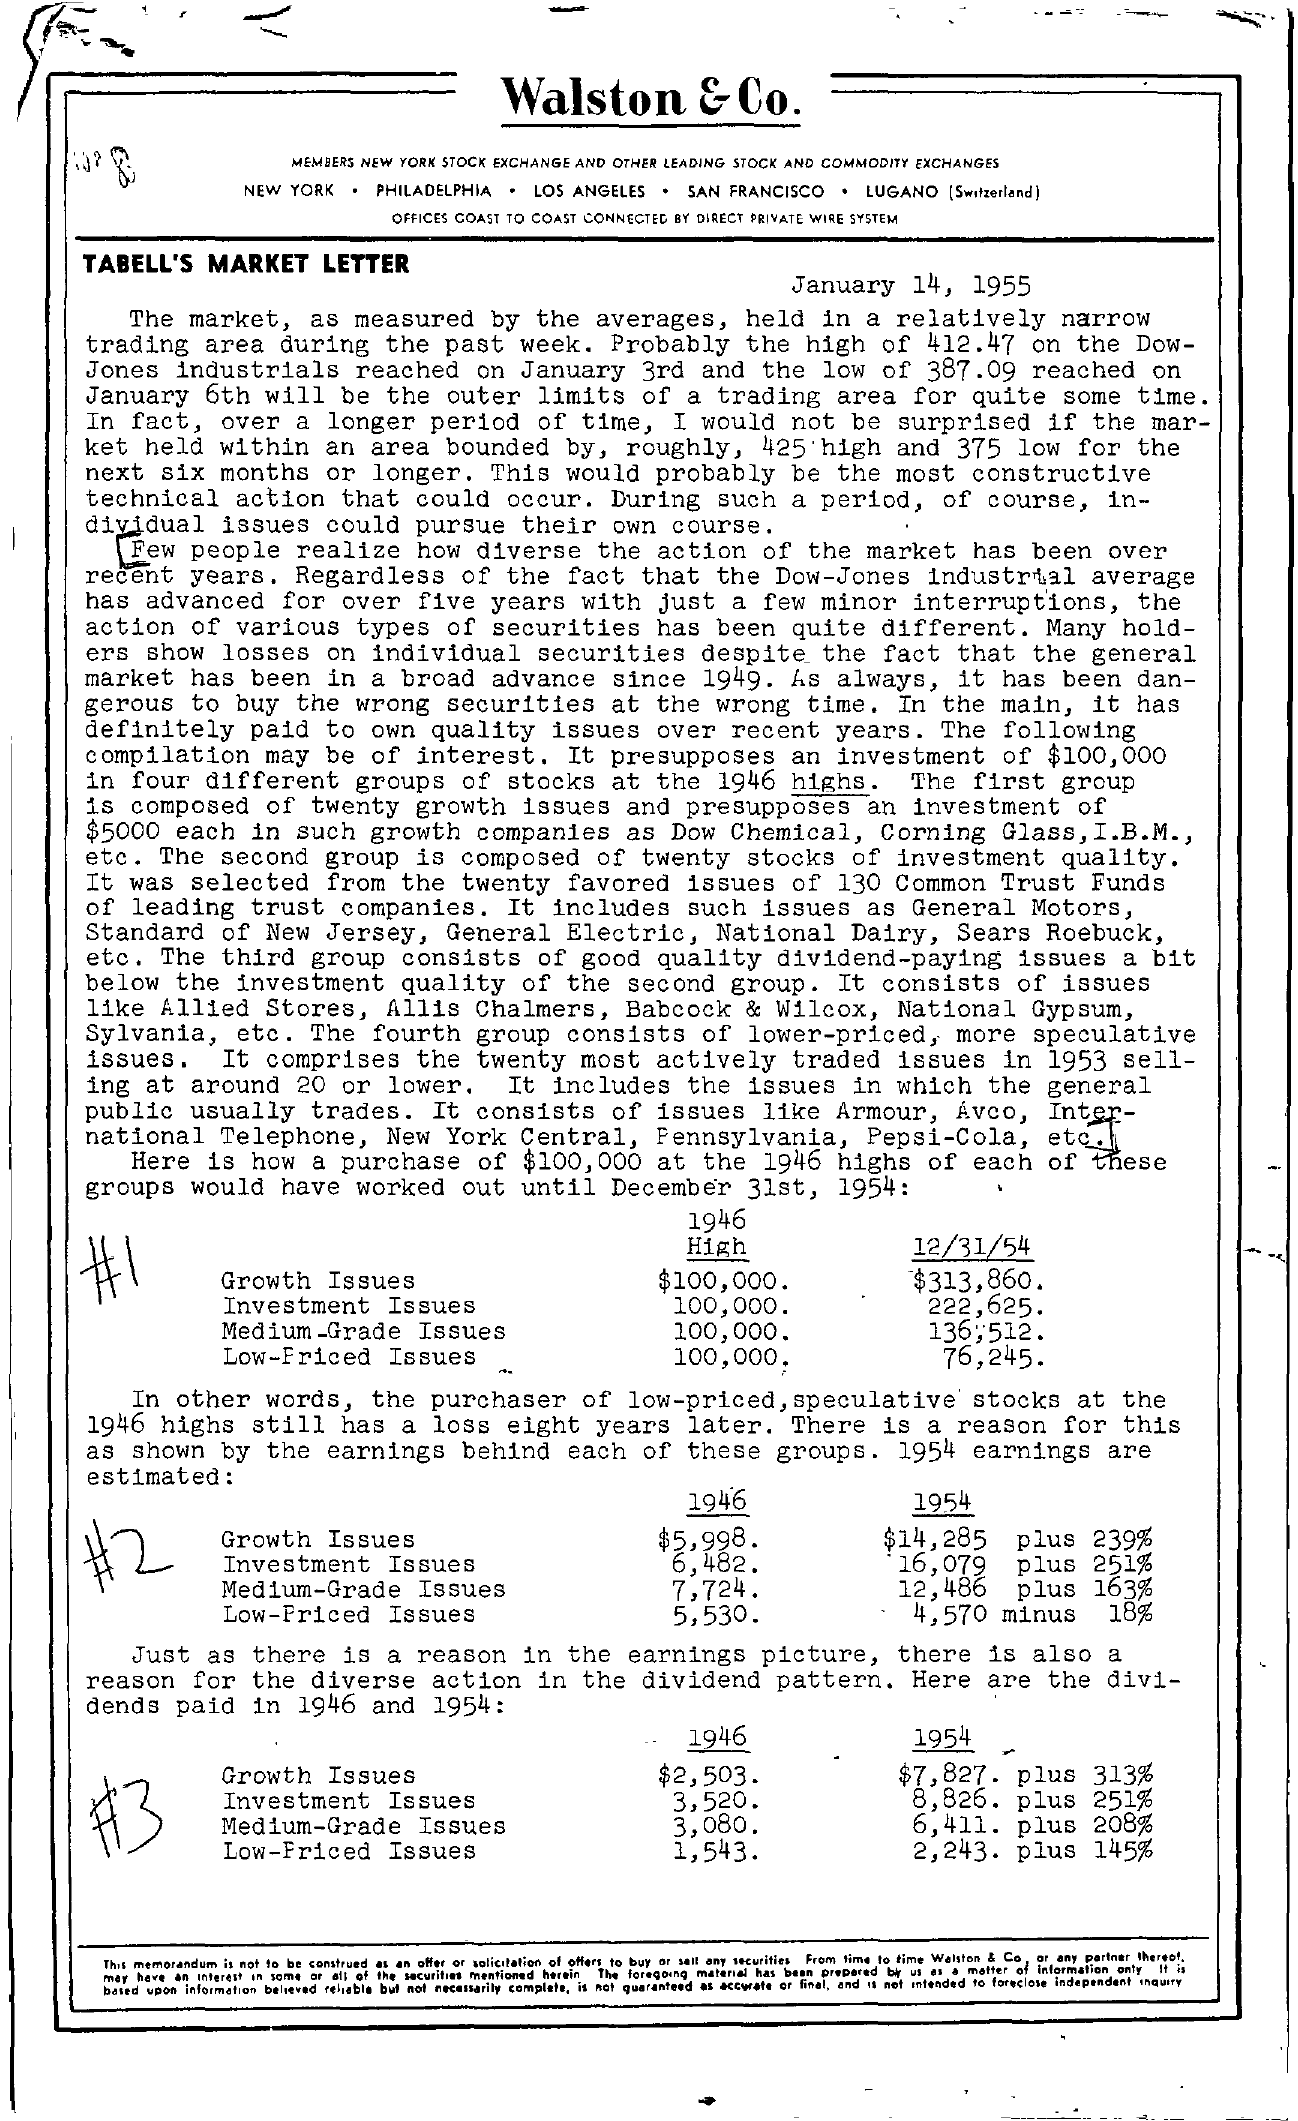 Tabell's Market Letter - January 14, 1955 page 1